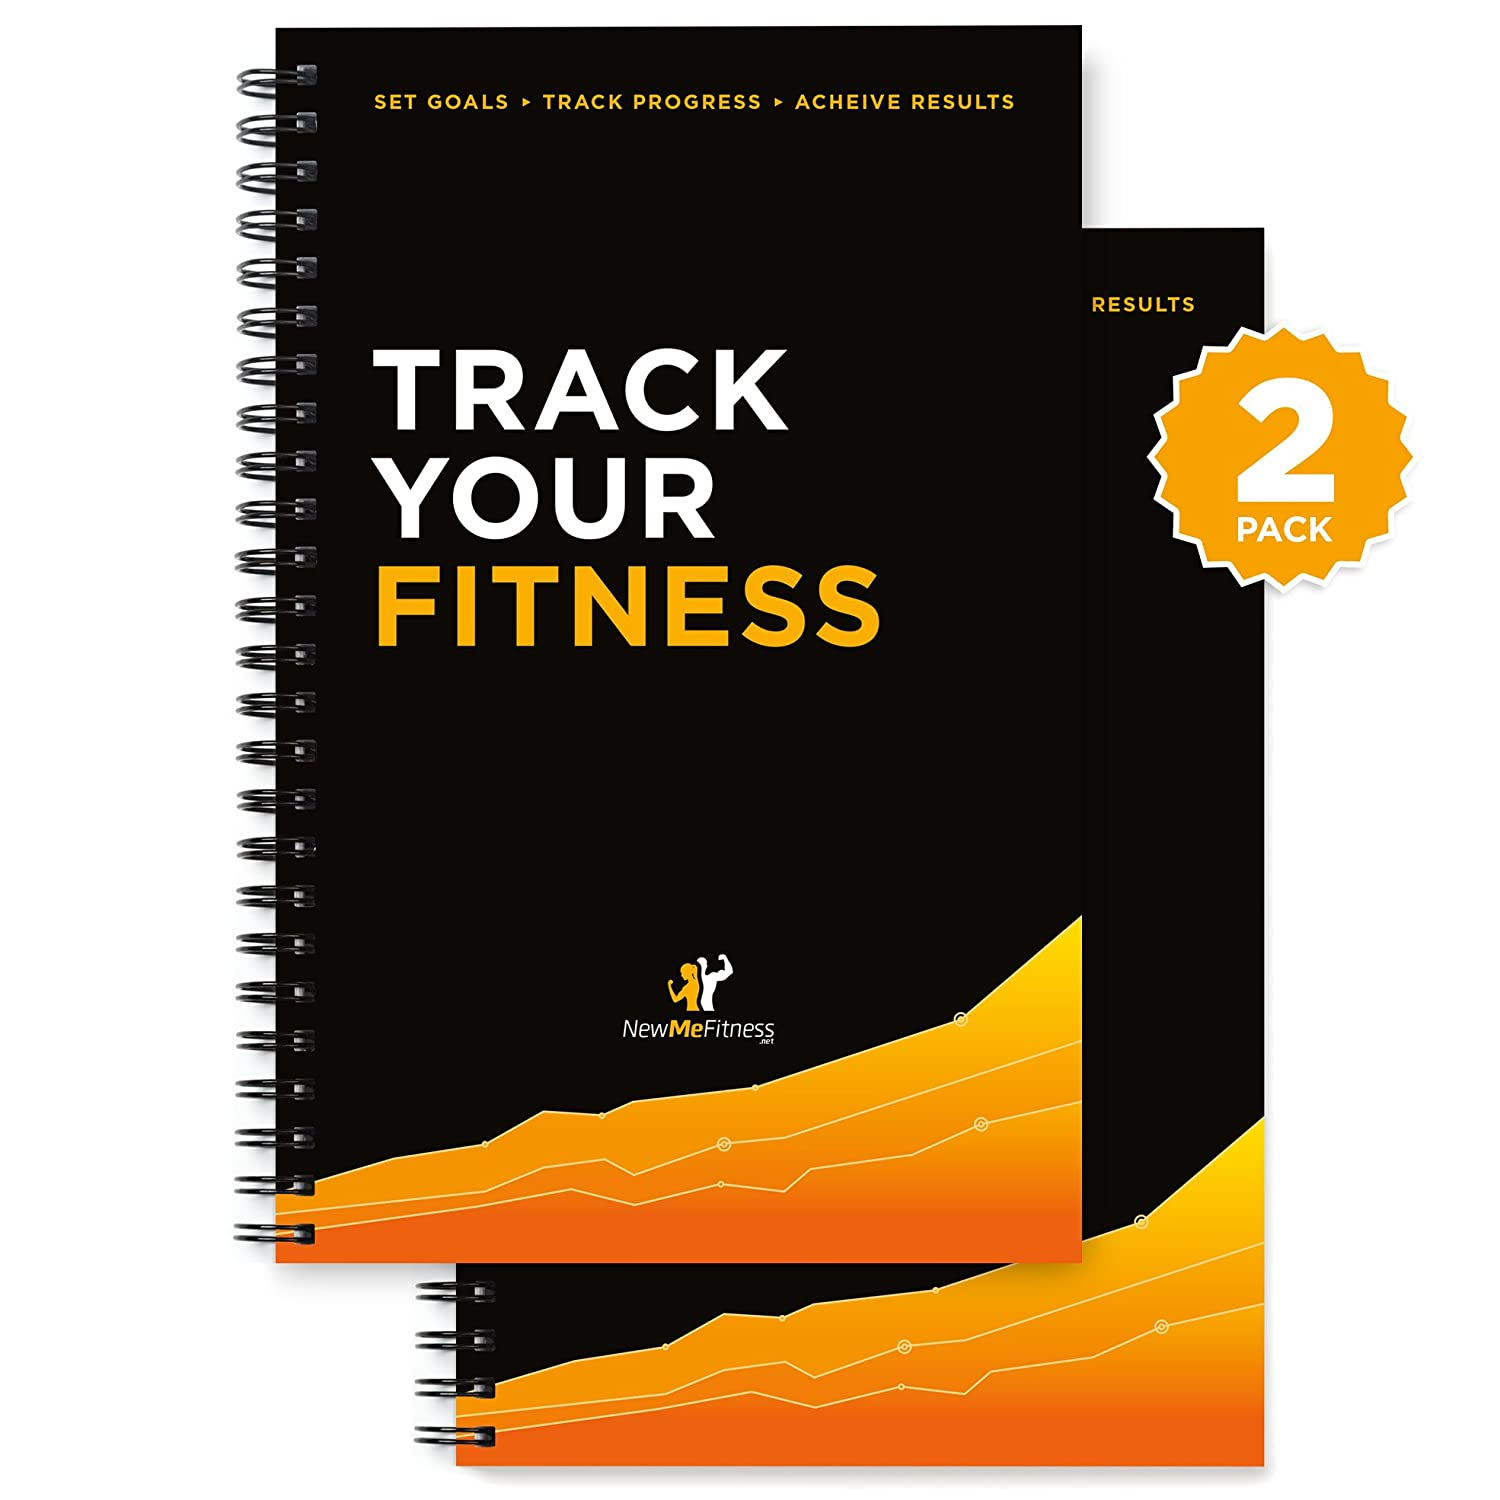 The Workout Log Book & Fitness Journal : Designed by Experts, with Illustrations :: Track Gym, Bodybuilding & Crossfit Progress : Sturdy Binding, Thick Pages, and Laminated, UV Protected Cover NewMe Fitness